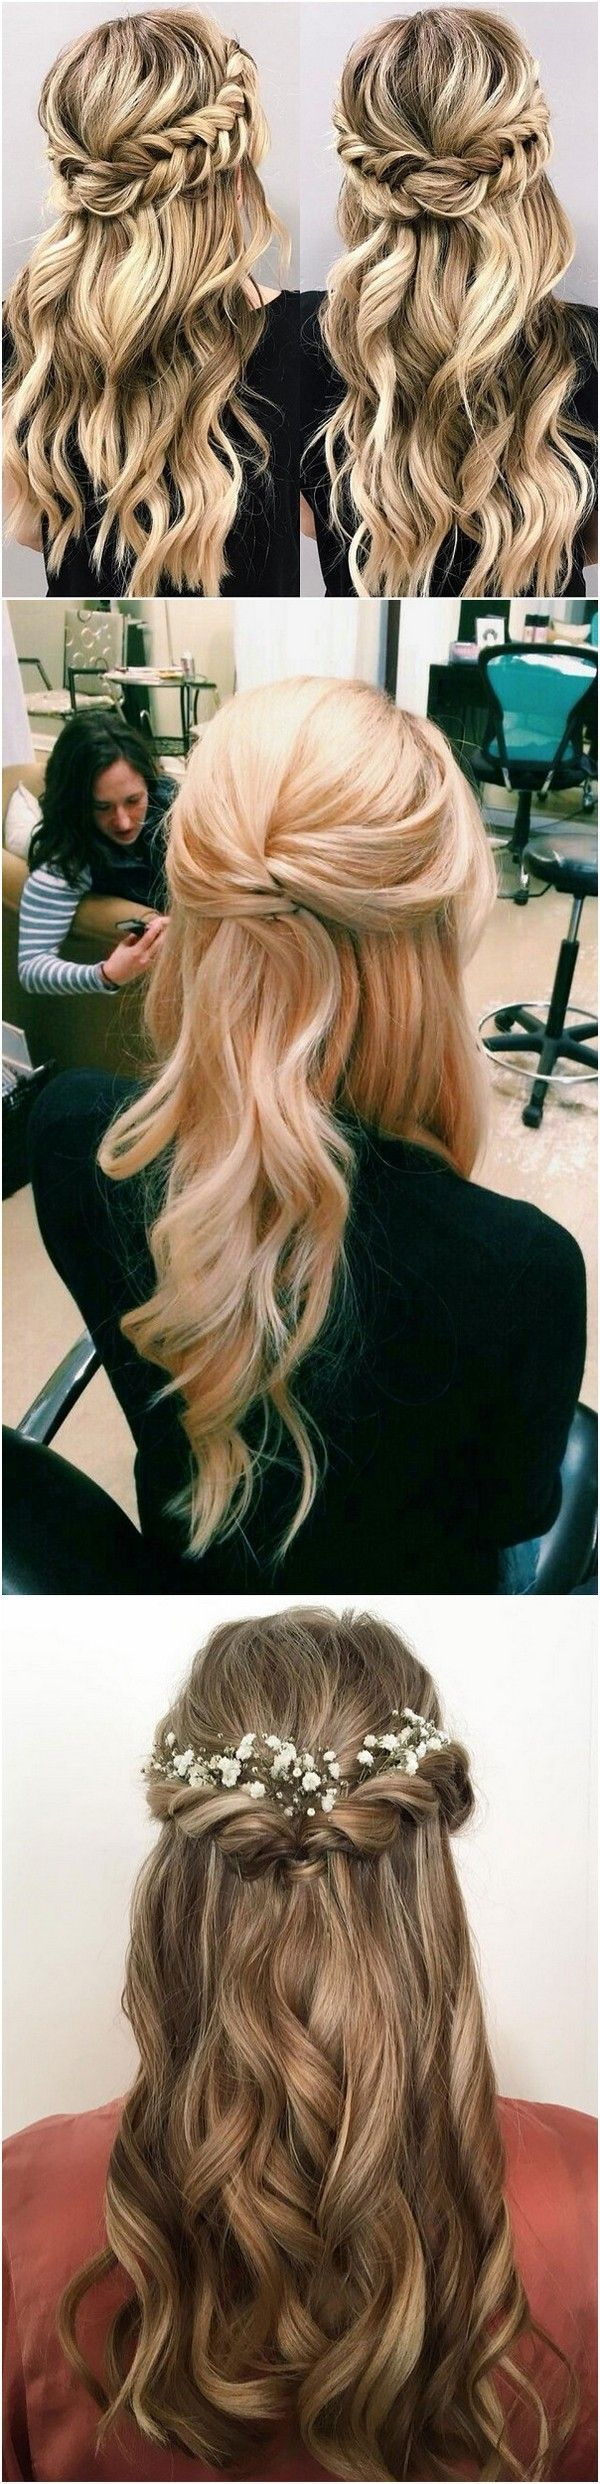 chic half up half down wedding hairstyles for long hair page